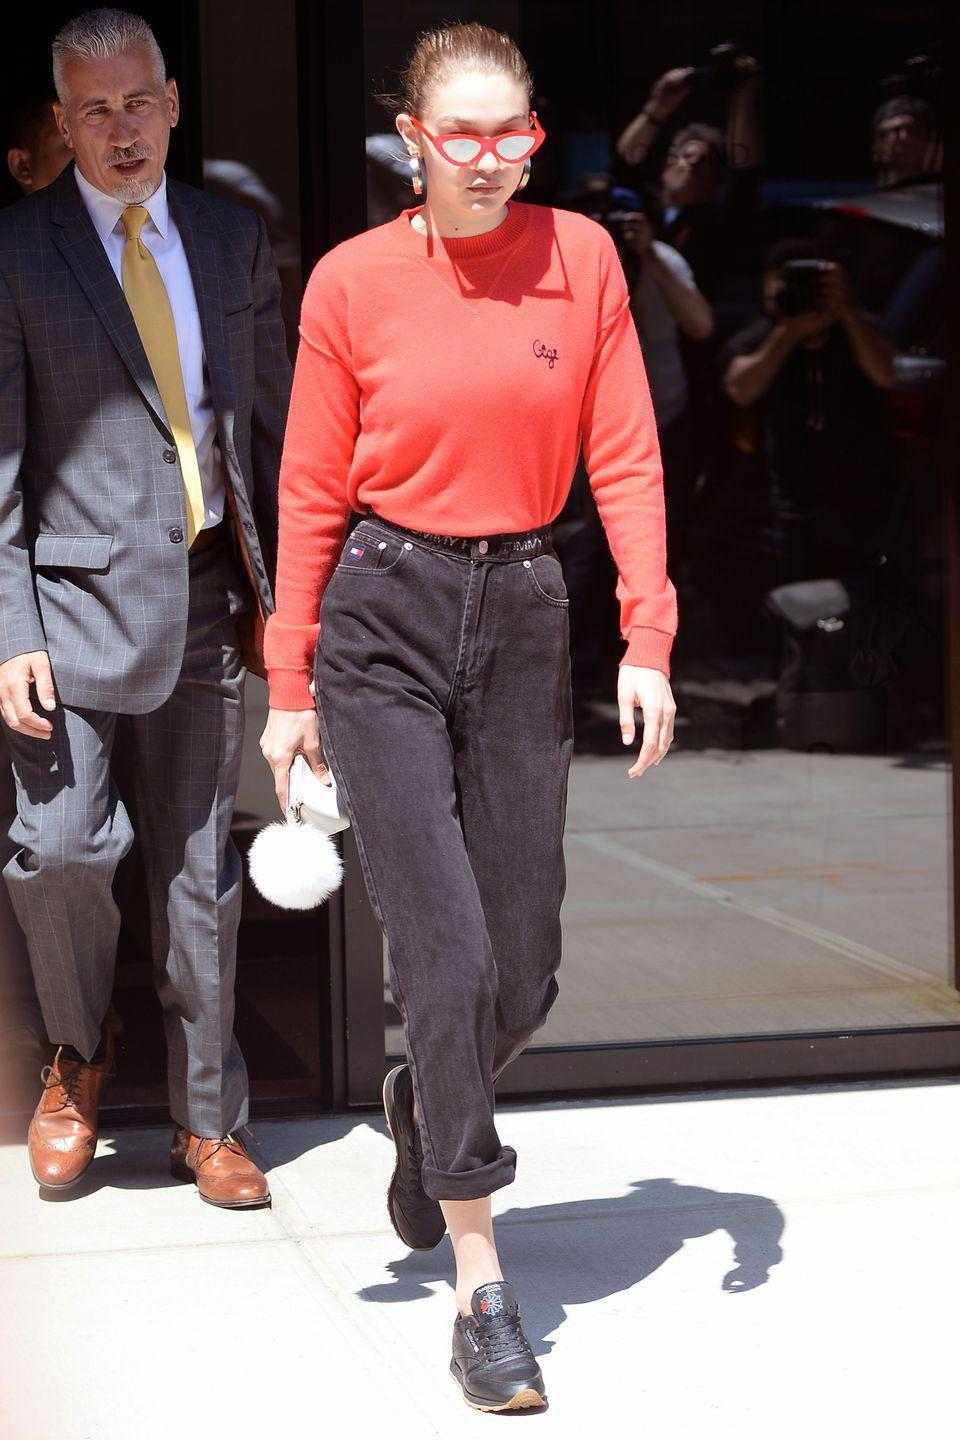 <p>In a red customized Rebecca Minkoff Gigi sweater, red Adam Selman x Le Specs Last Lolita eye sunglasses, high-waisted black jeans, Reebok sneakers and gold hoop earrings while out in New York.</p>